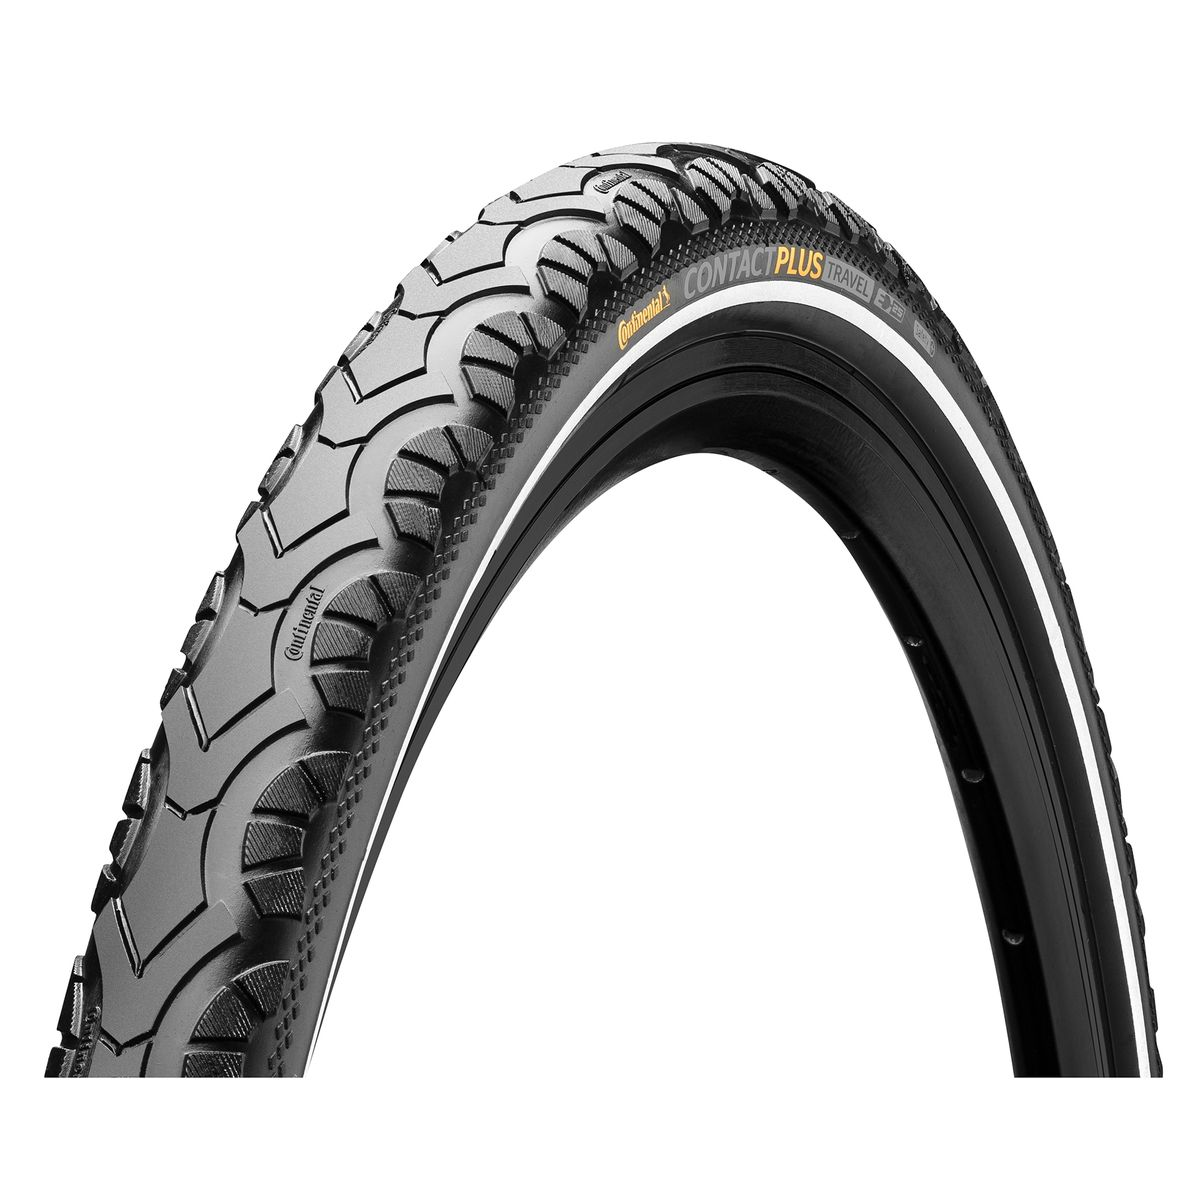 Contact Plus Travel Reflex tyre